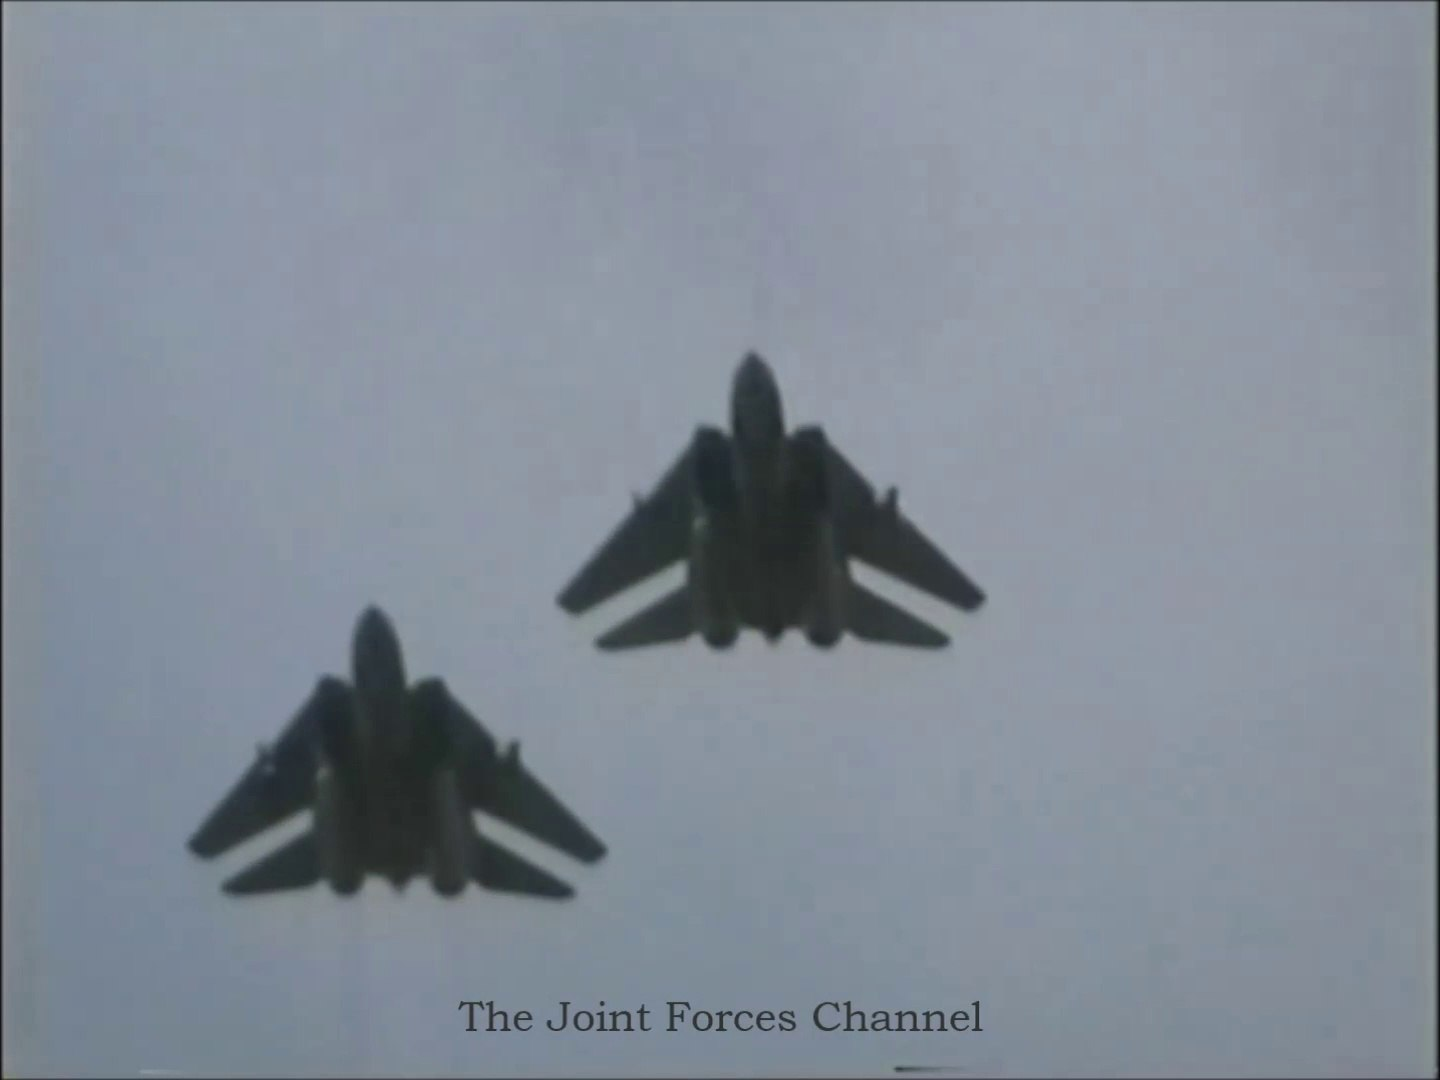 The Exercise Maple Leaf 99, F-14, F-15, F-16, F-18 In Action